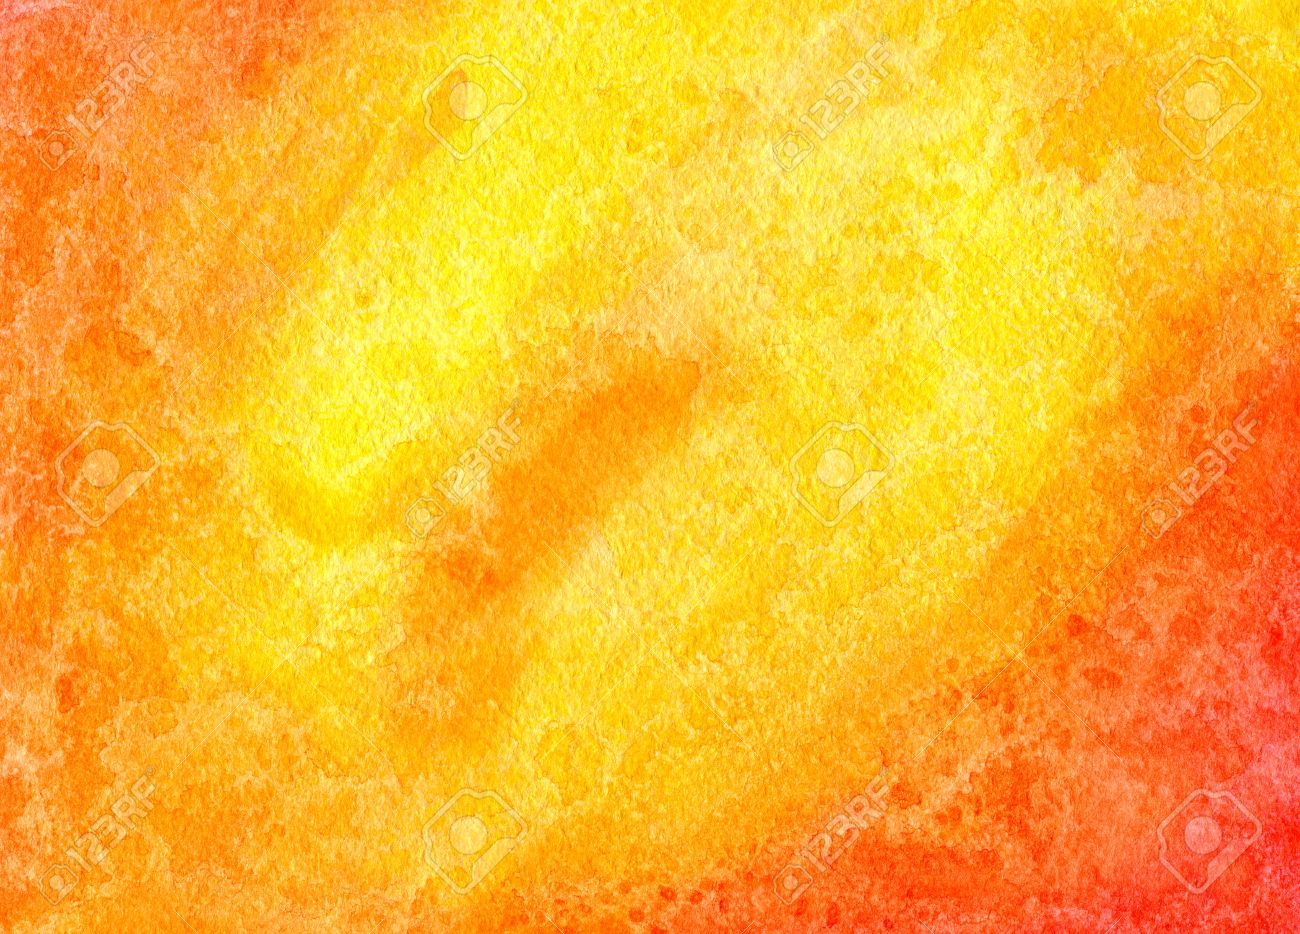 Abstract Watercolor Red Orange And Yellow Background Hand Drawn